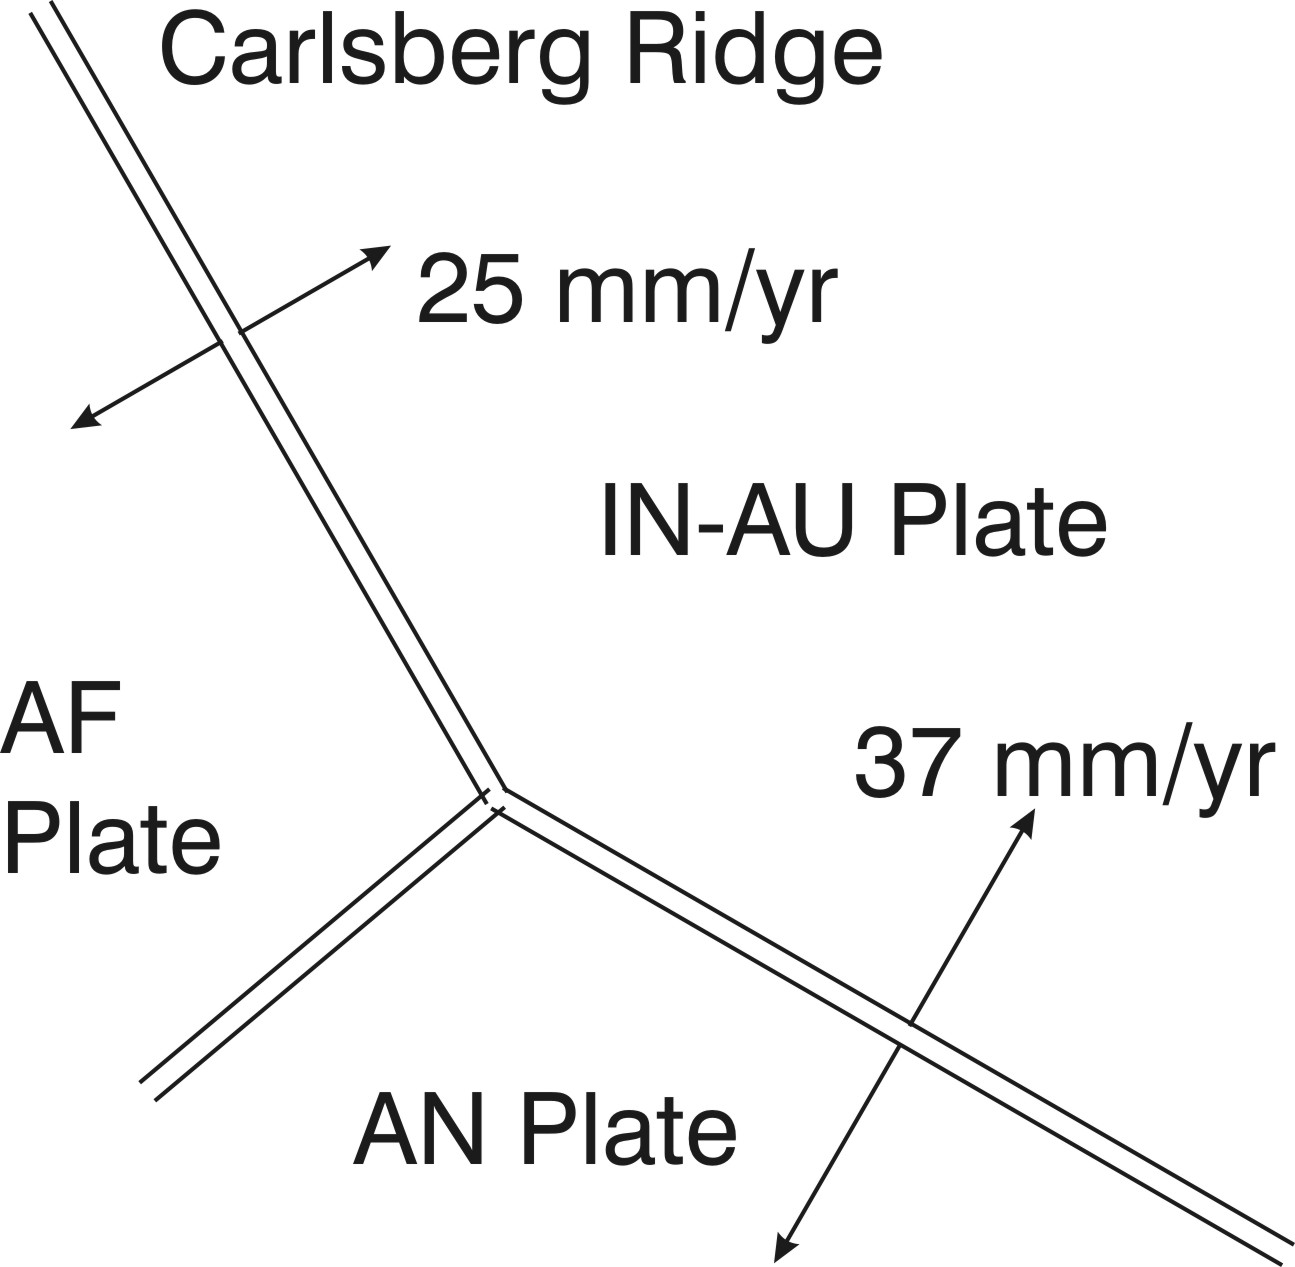 Slides To Illustrate Plate Kinematics J Waldron And Others